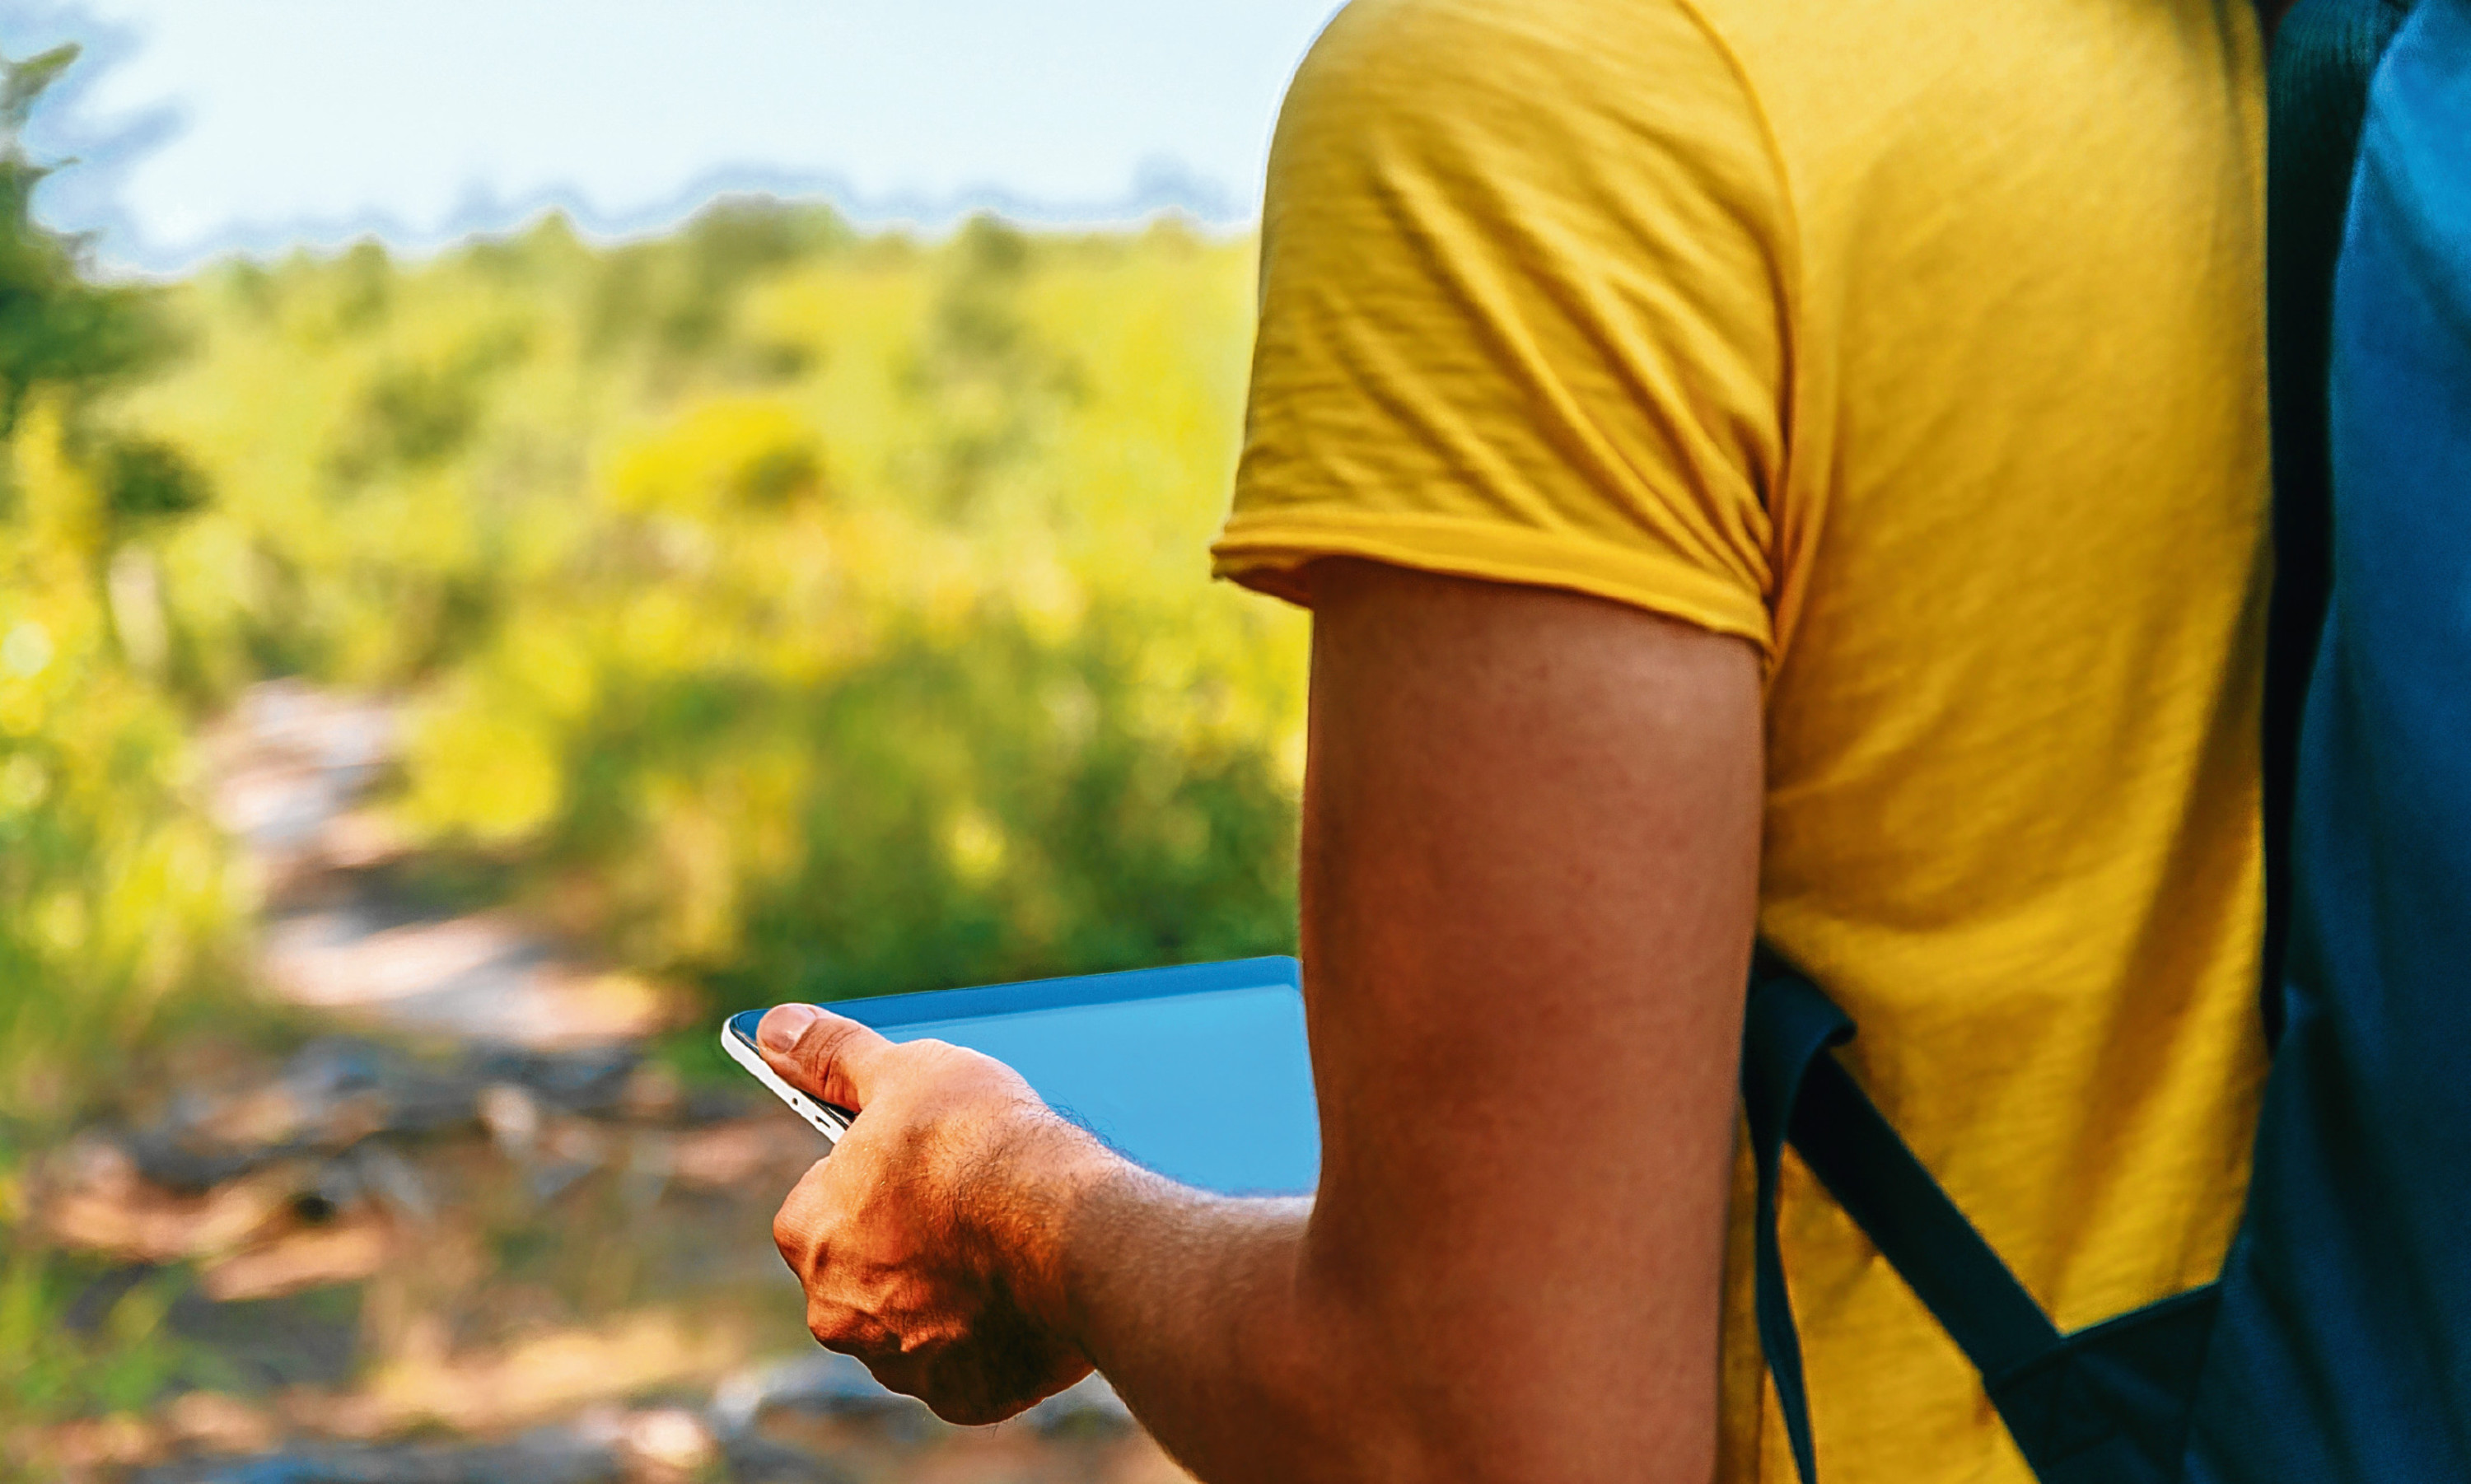 Smartphones and tablets have opened up a world far beyond the reach of most people's childhoods.